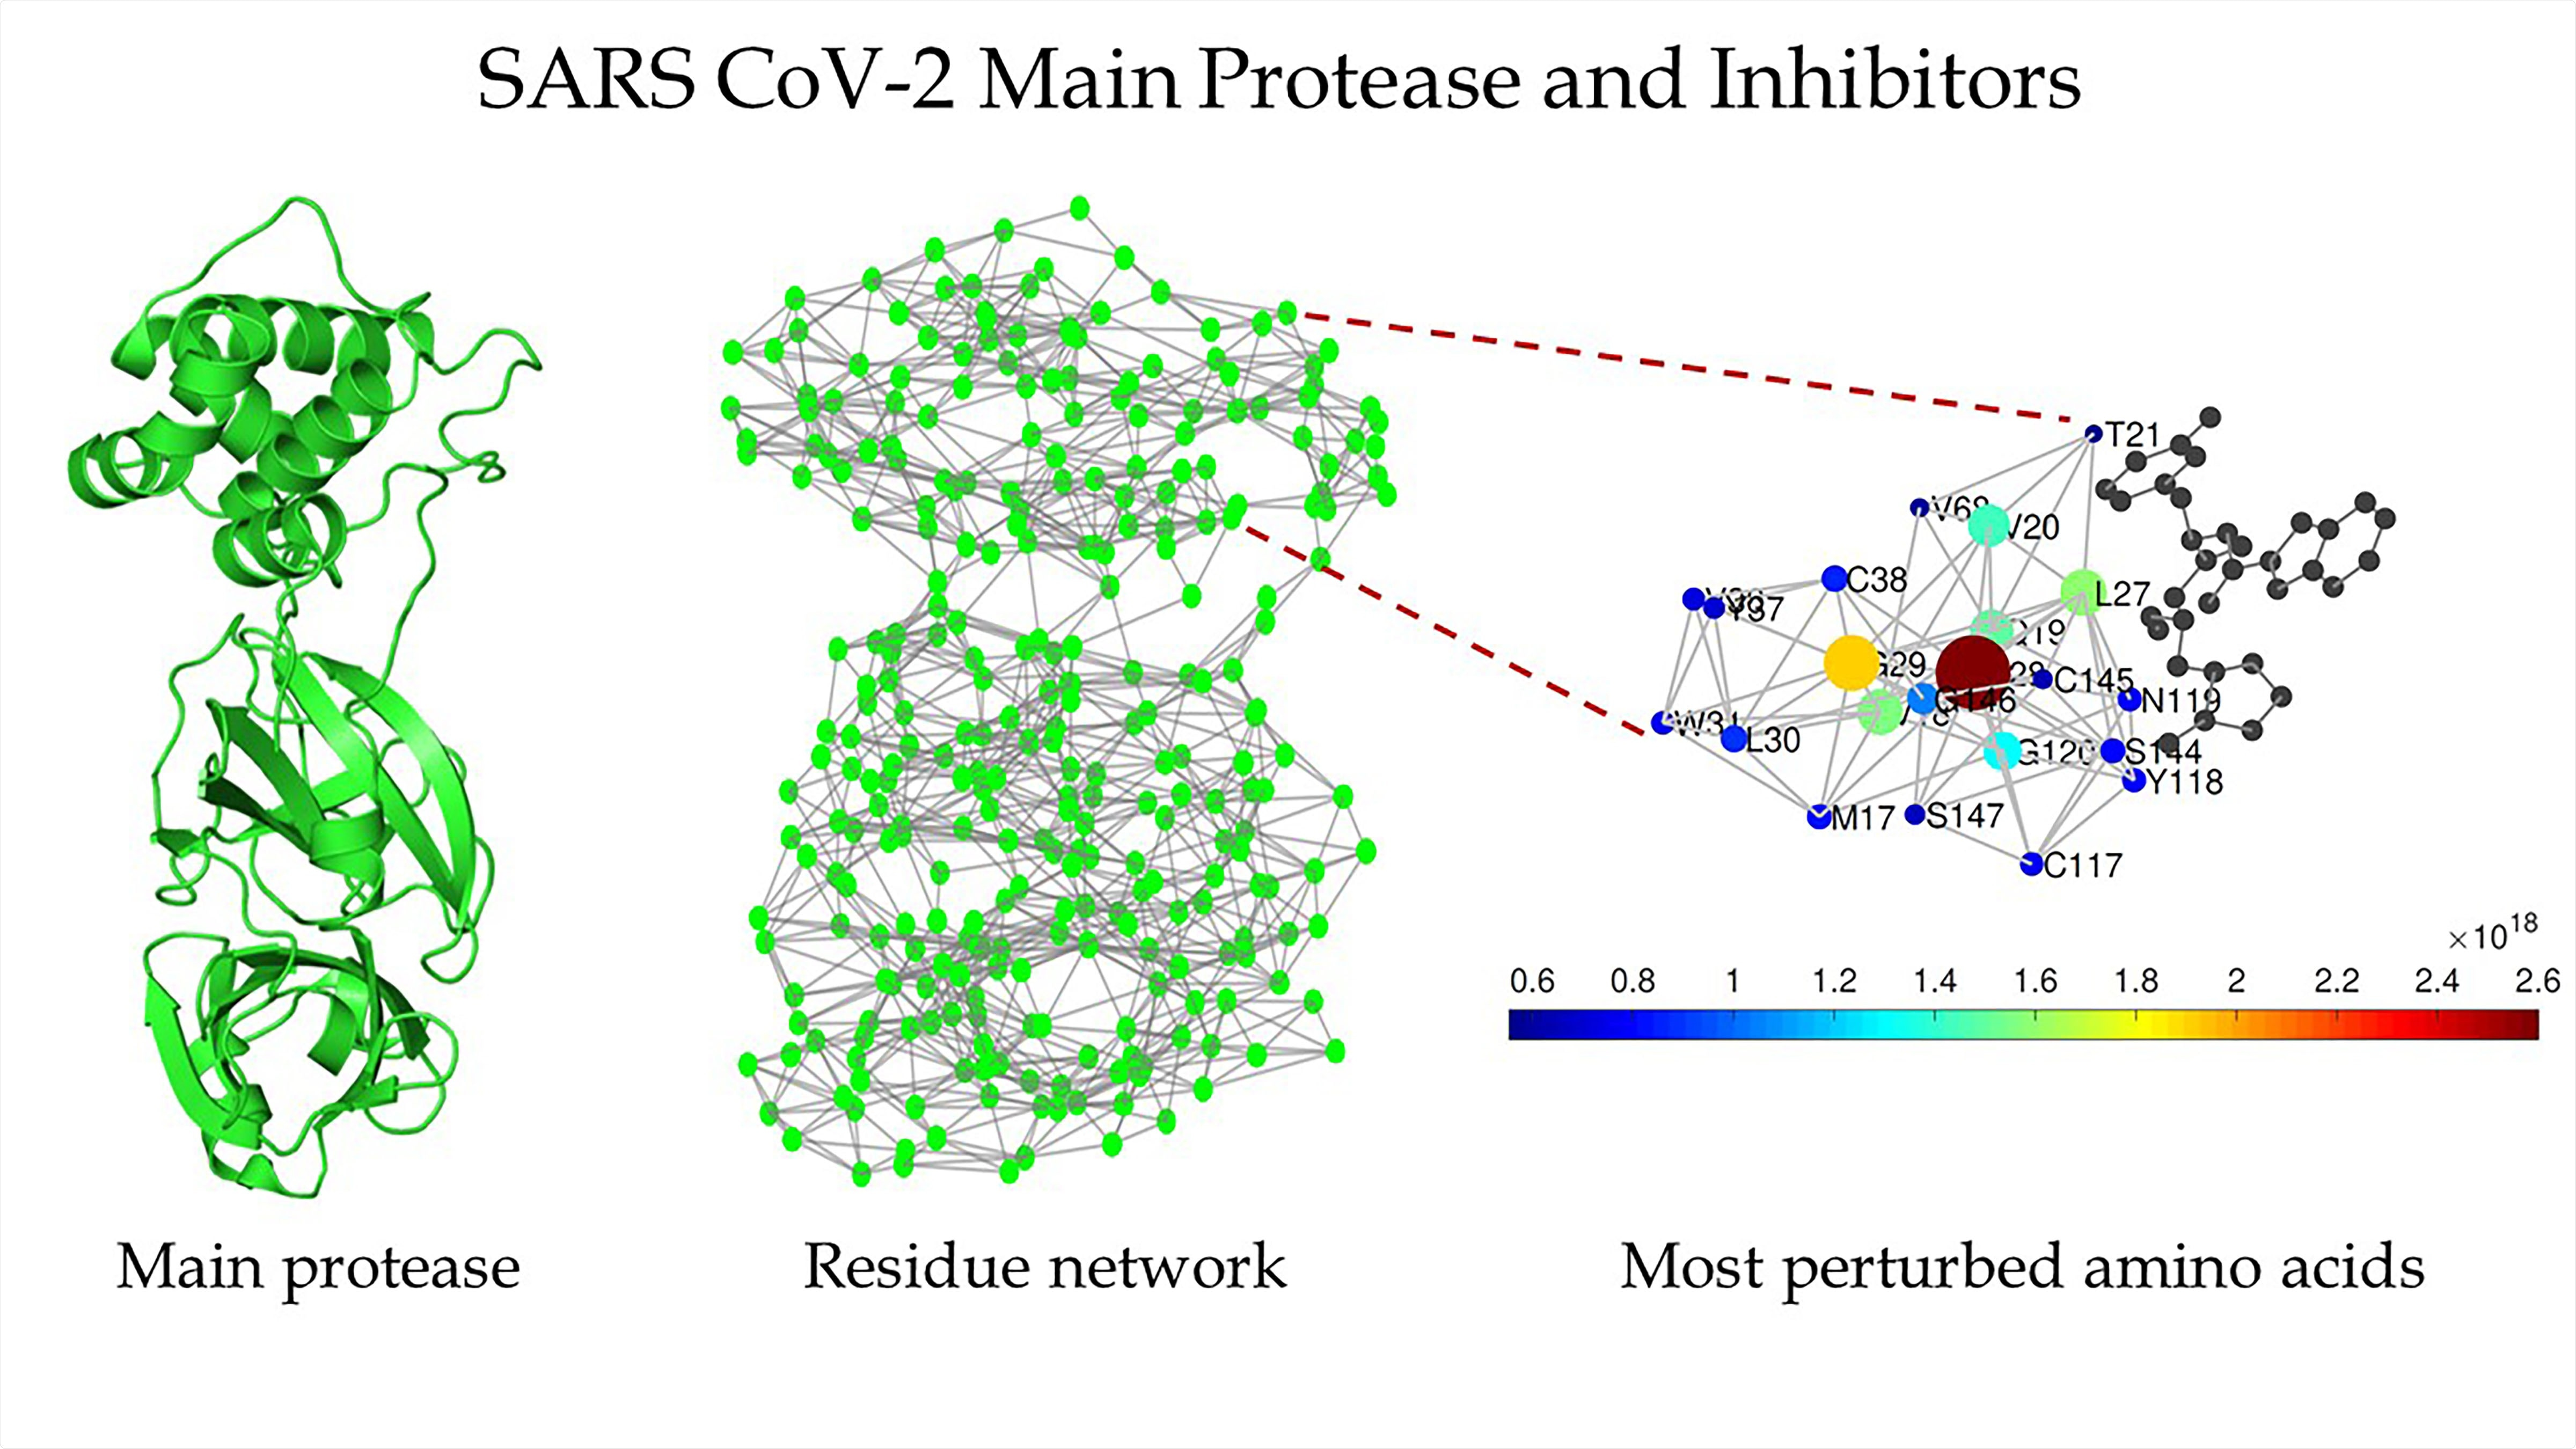 Schematic of the main protease of SARS-CoV-2 (left), the protein residue network of the main protease of SARS-CoV-2 (center), and a zoomed-in view of the region around the binding site as detected by Estrada (right).  CREDIT Ernesto Estrada